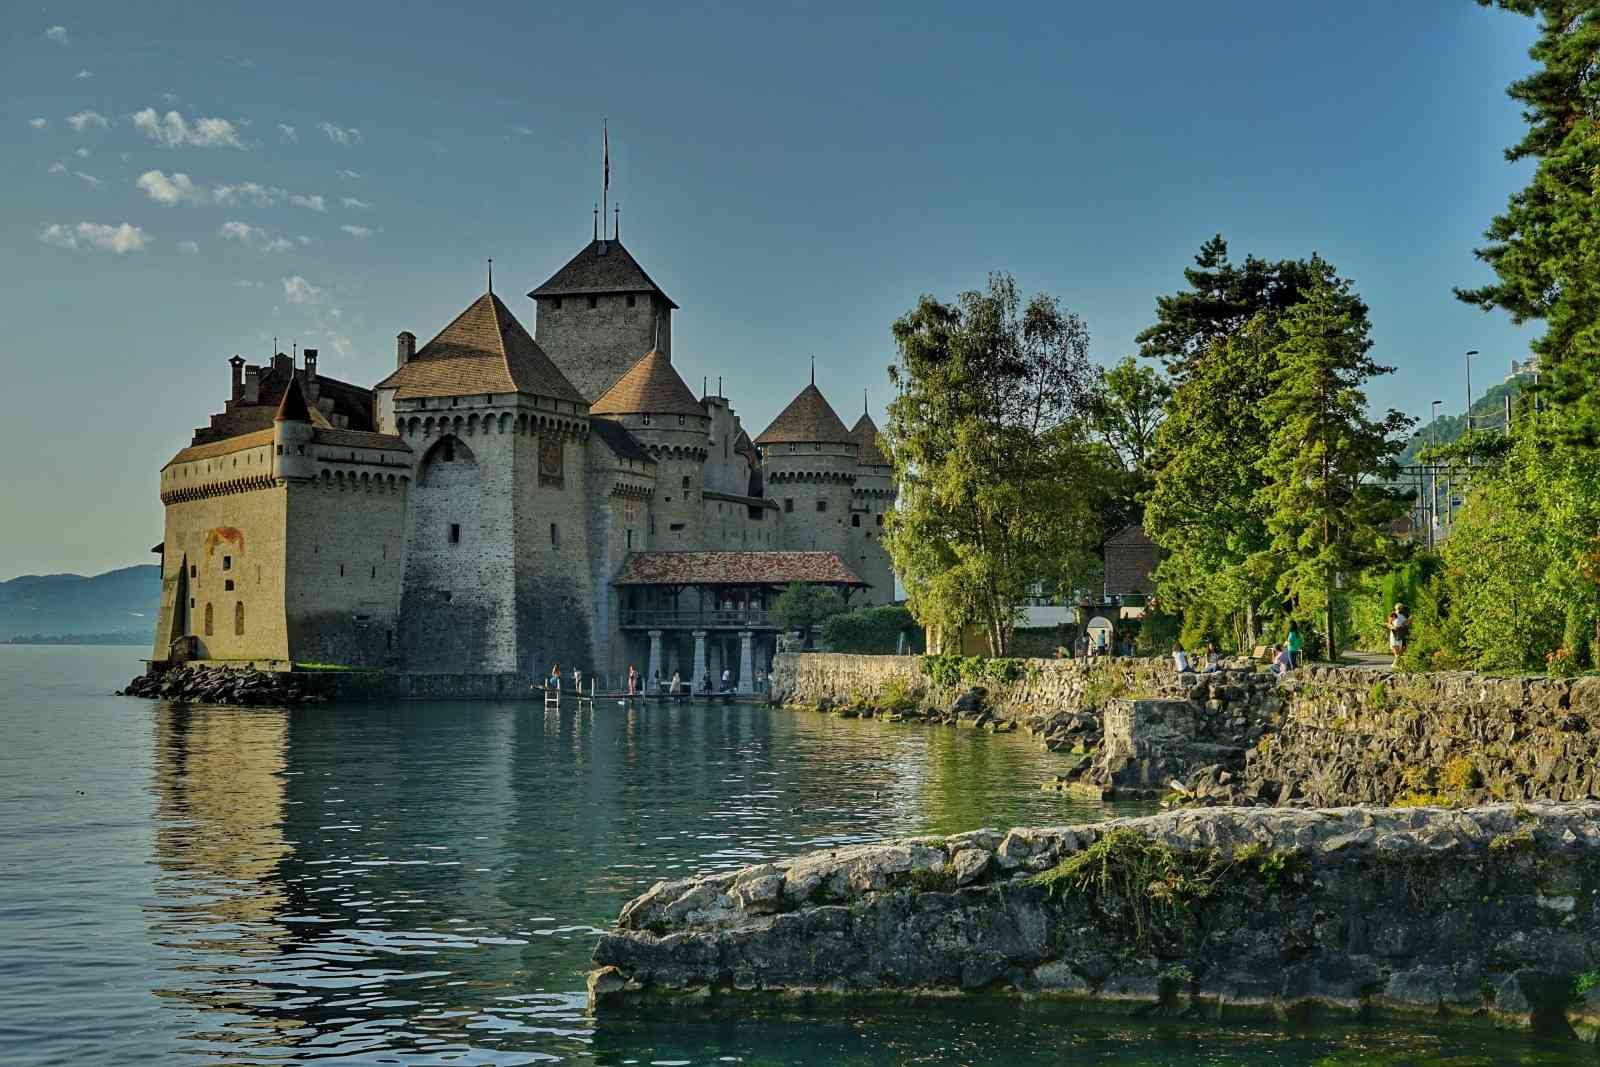 Exterior of Château Chillon with lakeshore